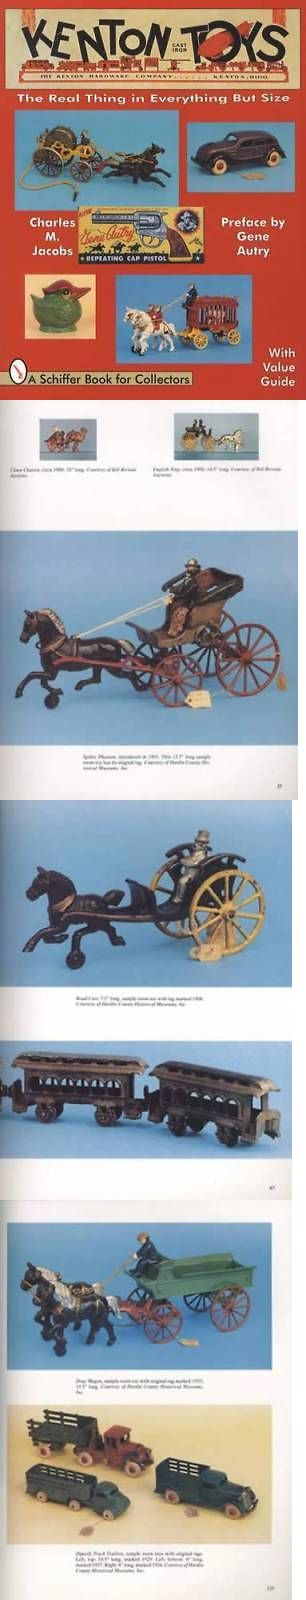 Cast Iron 721: Antique Kenton Cast Iron Toys Collector Guide Incl Banks Stoves Cars And More -> BUY IT NOW ONLY: $39.95 on eBay!